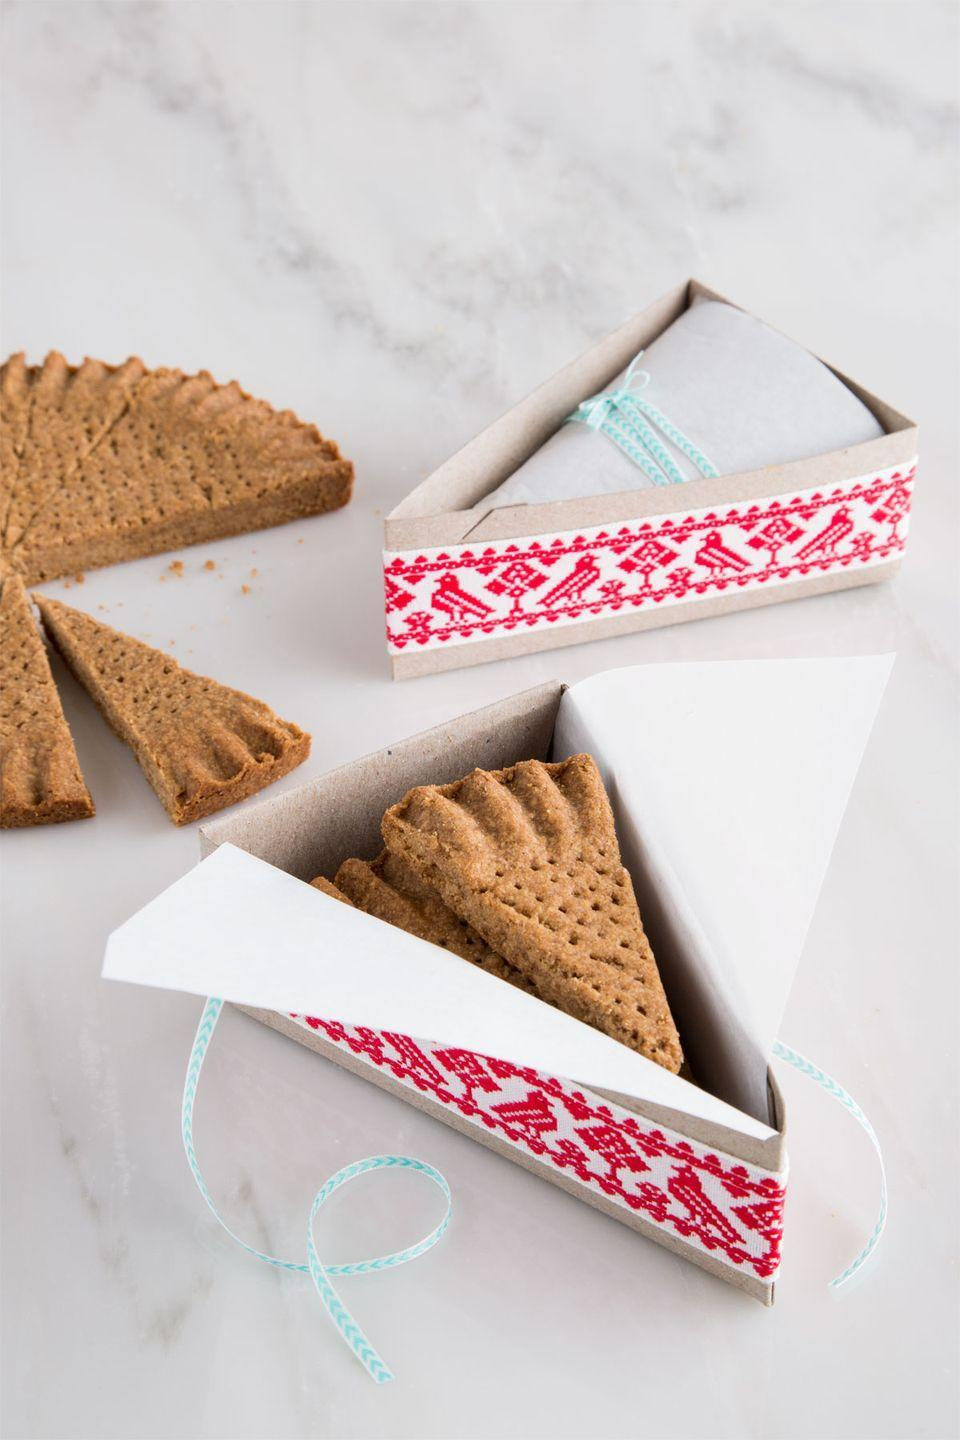 "<p>Wrap the edges of a cardboard pie slice box with decorative ribbon. Wrap cookies in parchment, then secure with ribbon and tuck inside box.</p><p><a href=""https://www.countryliving.com/food-drinks/recipes/a36900/spiced-shortbread/"" rel=""nofollow noopener"" target=""_blank"" data-ylk=""slk:Get the recipe."" class=""link rapid-noclick-resp""><strong>Get the recipe.</strong></a></p><p><a class=""link rapid-noclick-resp"" href=""https://go.redirectingat.com?id=74968X1596630&url=https%3A%2F%2Fwww.etsy.com%2Flisting%2F223519166%2Fpie-slice-box-for-weddings-picnics&sref=http%3A%2F%2Fwww.countryliving.com%2Ffood-drinks%2Fg647%2Fholiday-cookies-1208%2F"" rel=""nofollow noopener"" target=""_blank"" data-ylk=""slk:SHOP PIE SLICE BOXES"">SHOP PIE SLICE BOXES</a></p>"